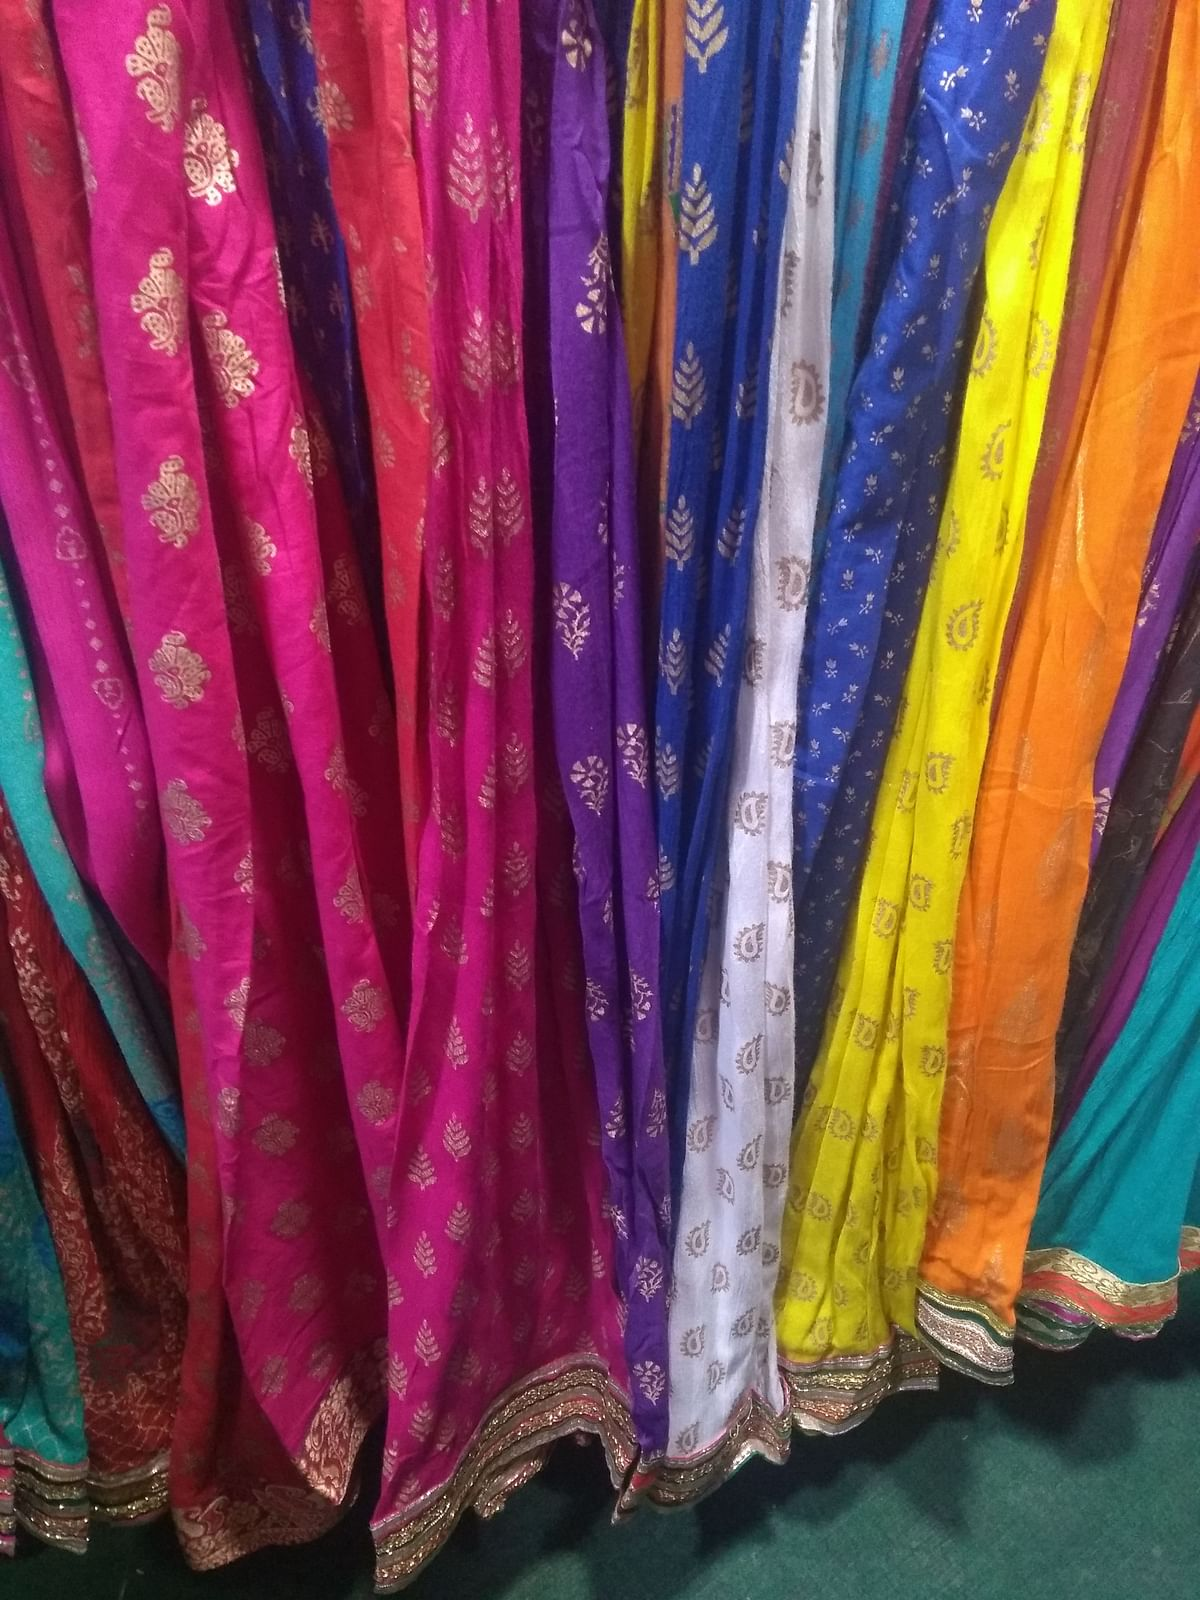 Dilli Haat  hijacked by traders & middlemen, craftspeople left in the lurch, laments Jaya Jaitly